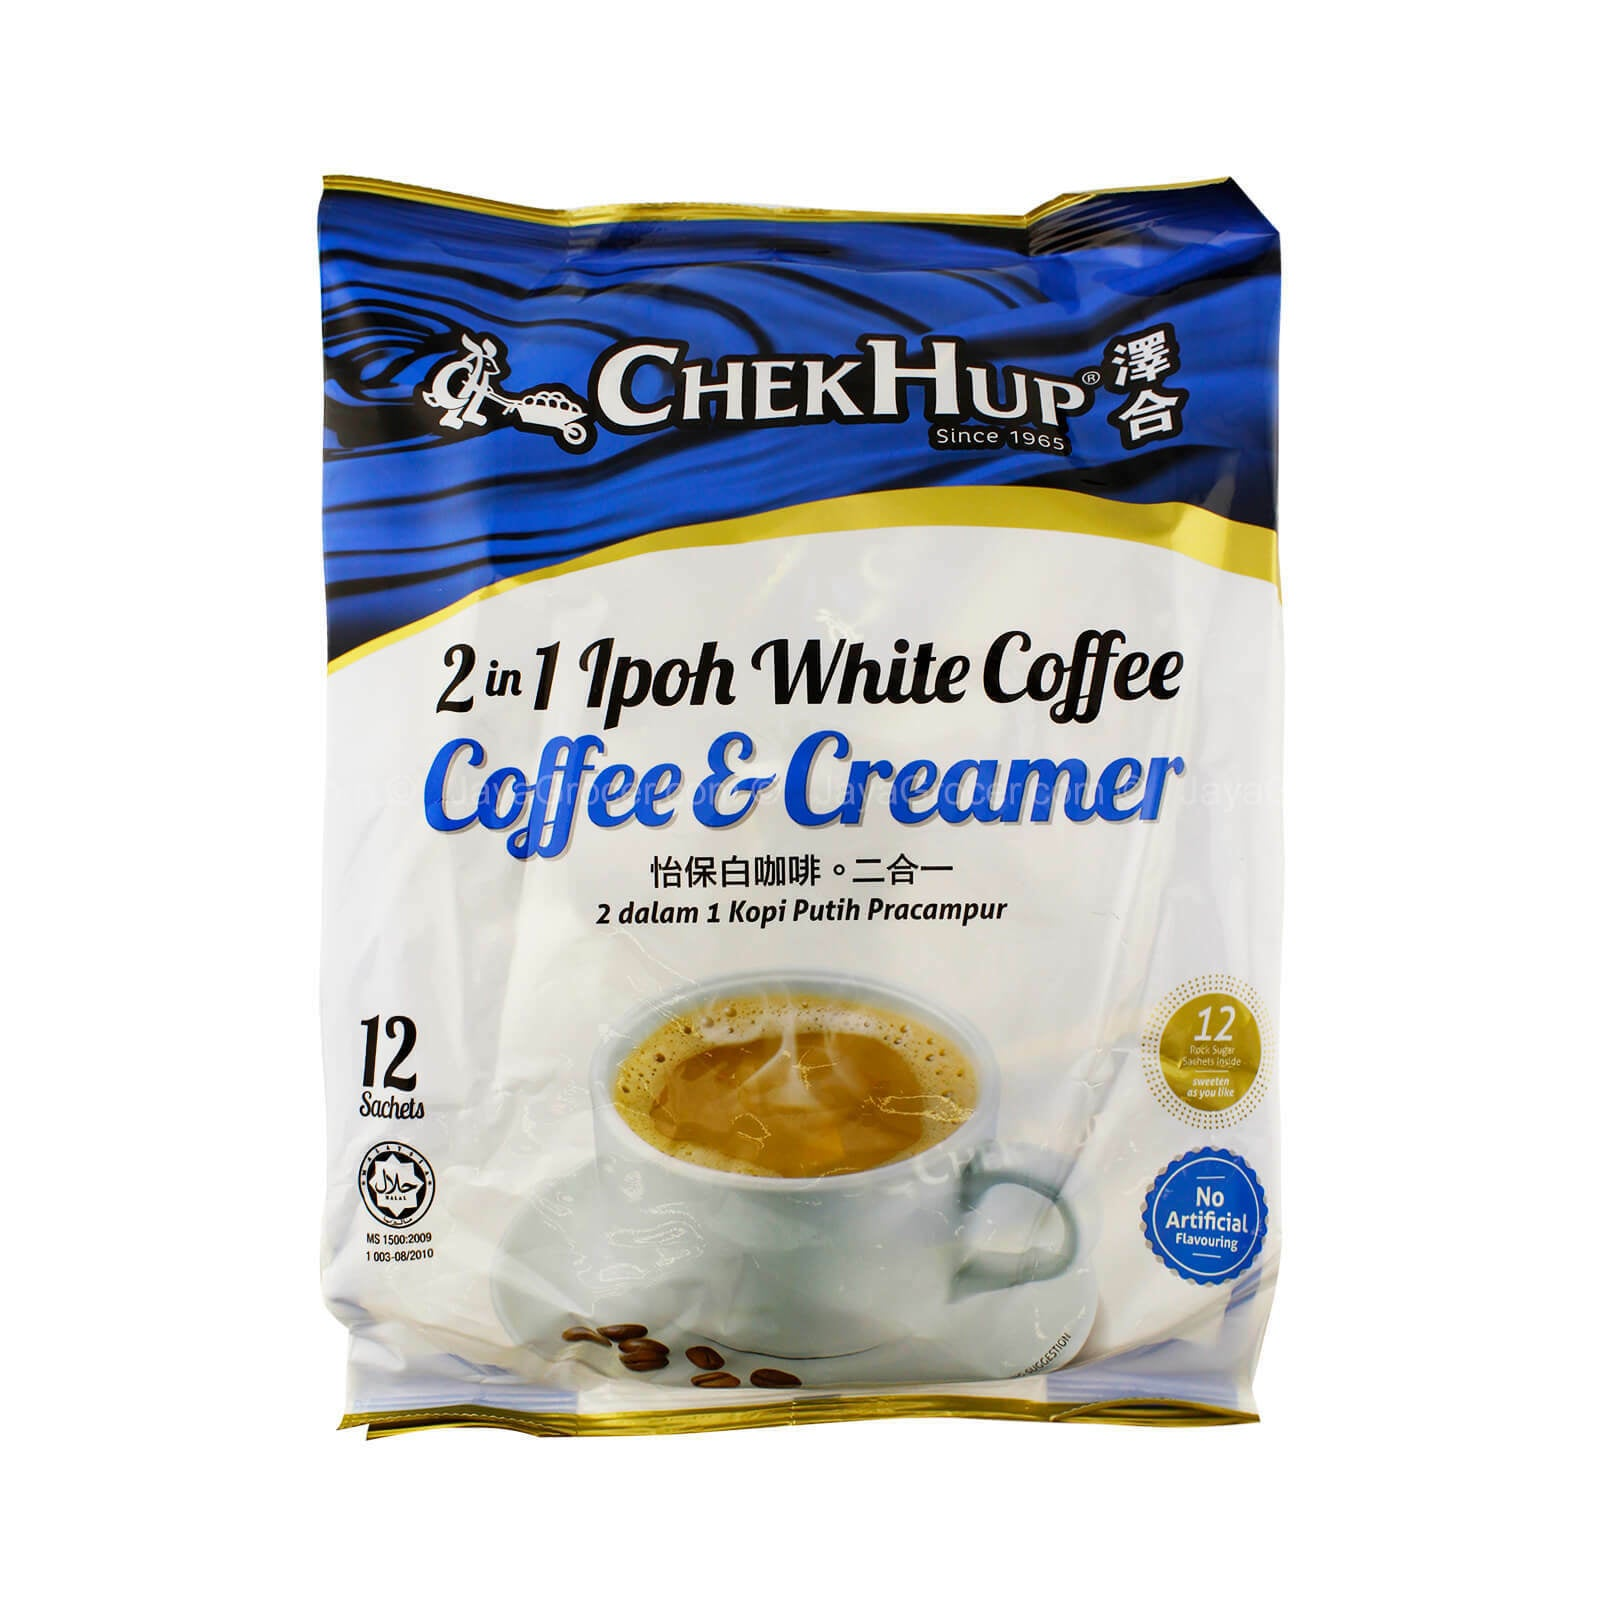 ChekHup 2 in 1 No Added Sugar Ipoh White Coffee and Creamer 12.7 Oz (360 mg) - 泽合2合一怡保白咖啡无糖